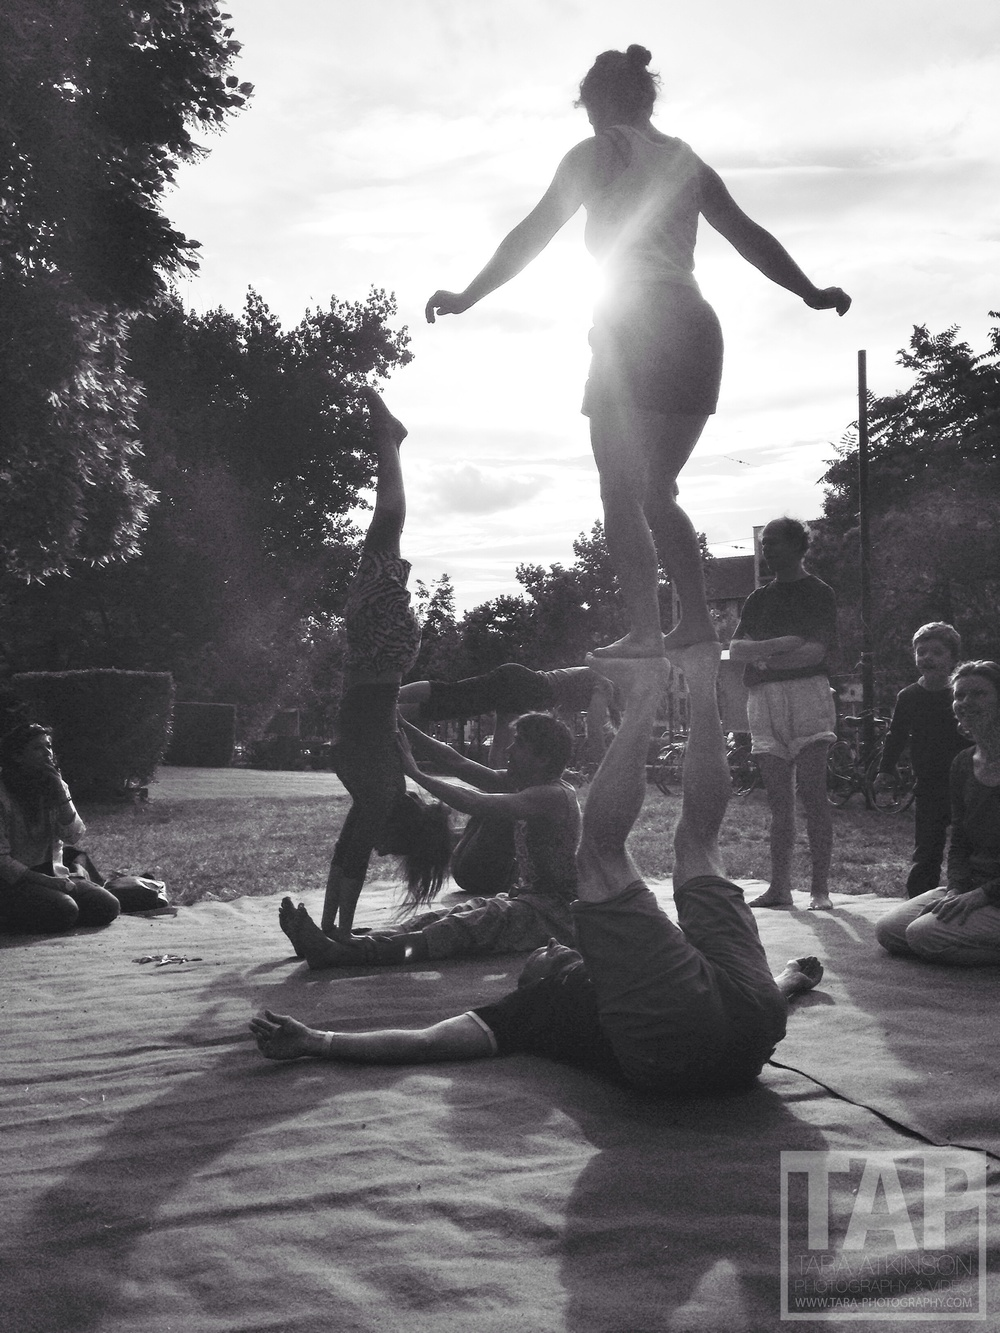 Jamming with the Inspiral Acro guys outside